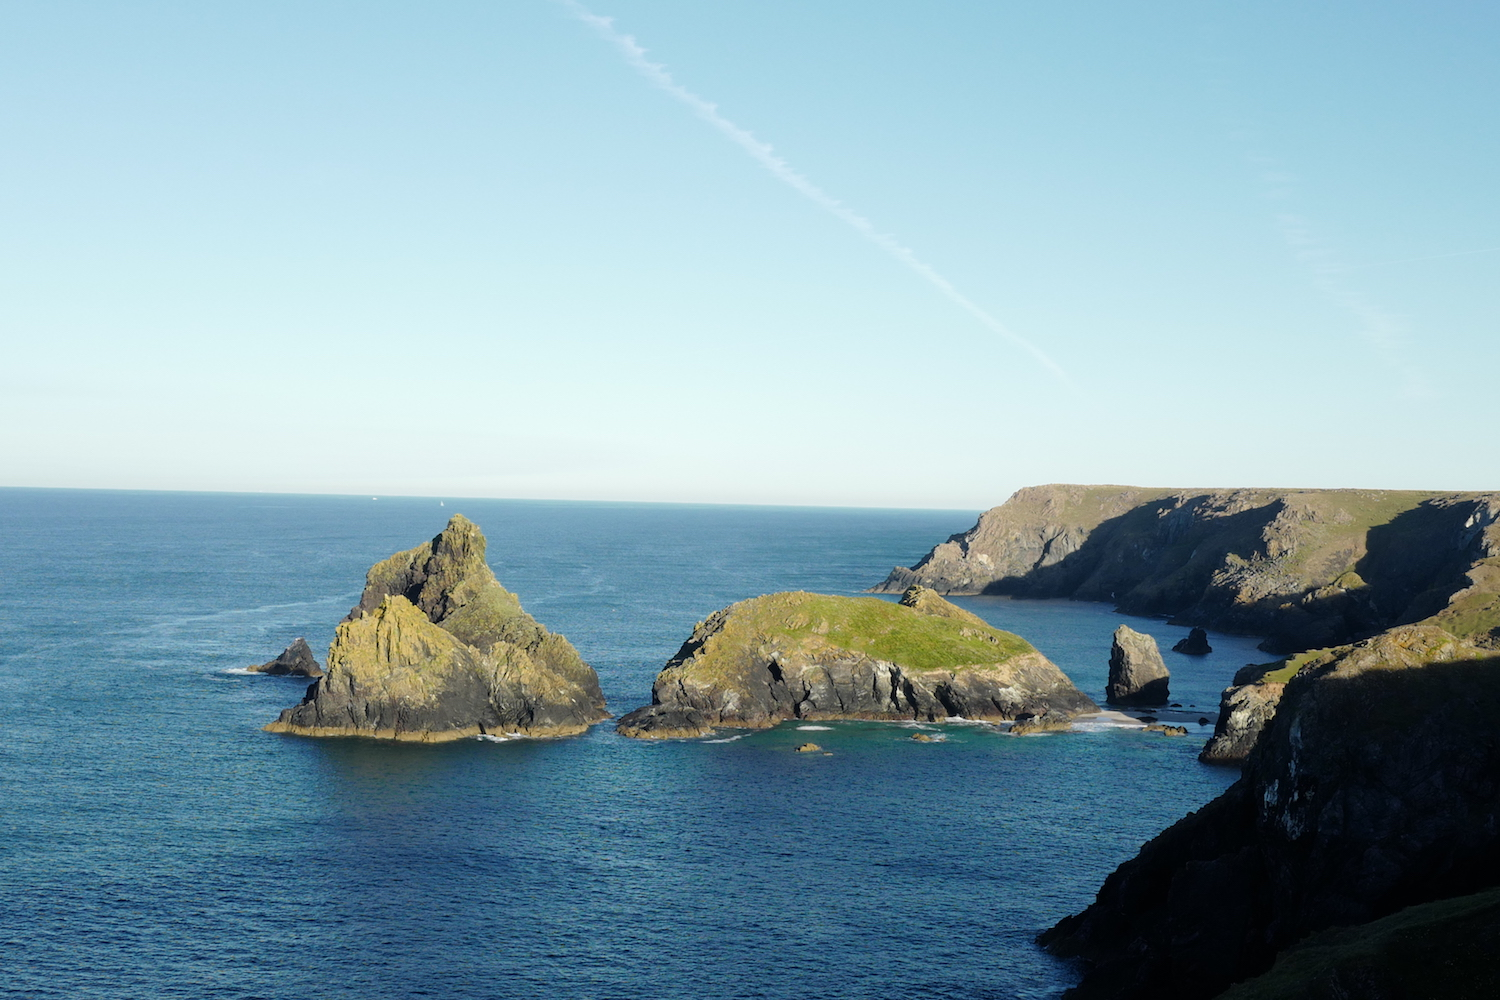 A cliff view of Kynance Cove at high tide